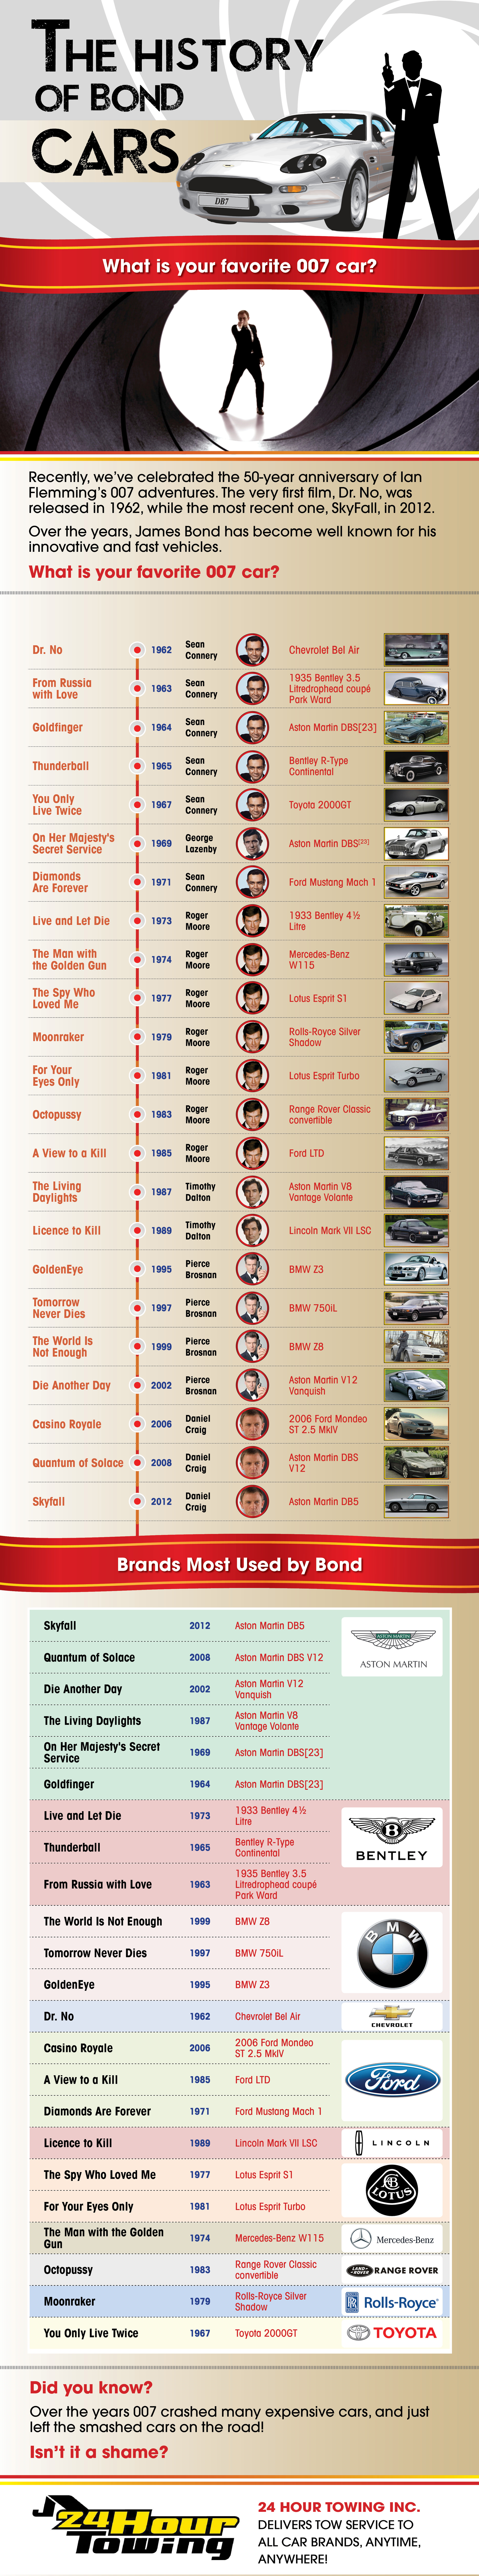 The History of Bond Cars